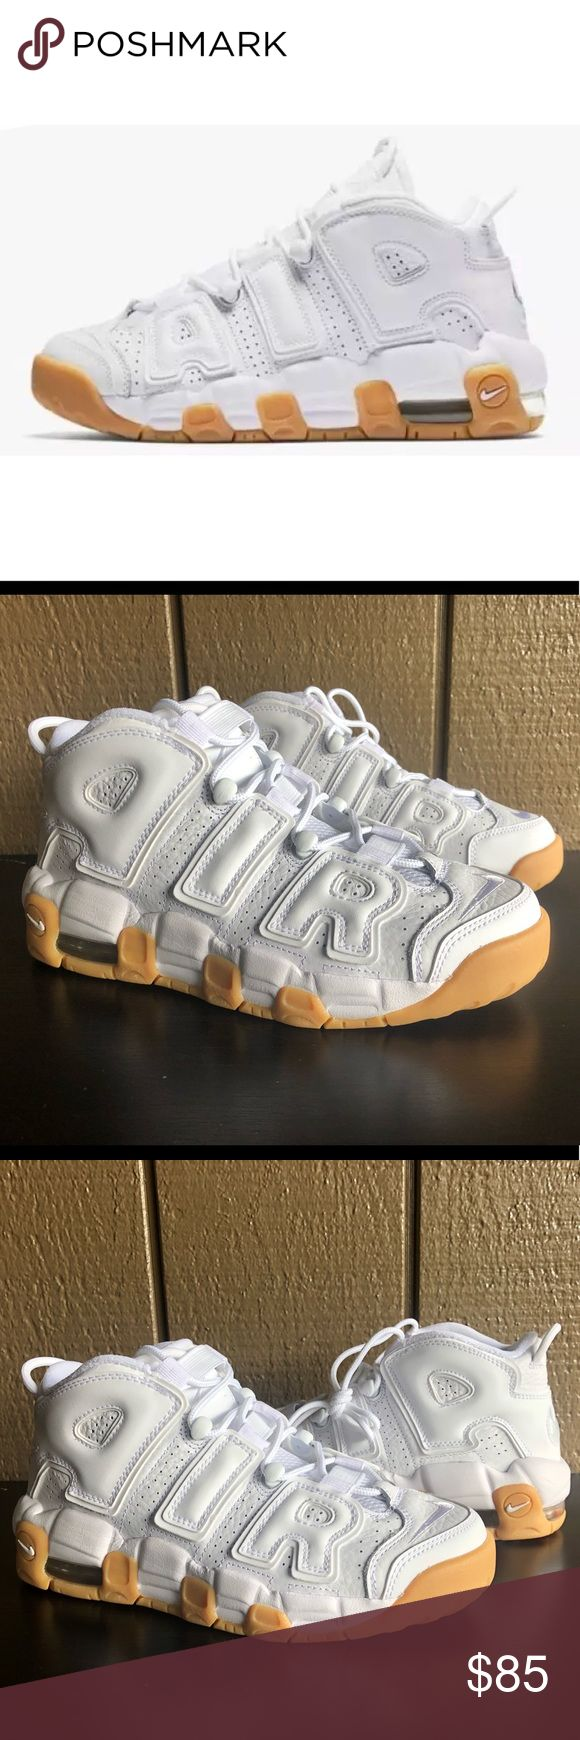 Nike Air More Uptempo White Gum Basketball Shoes Brand : Nike Color : White/Gum Size : 5Y Style Code : 415082-101 Material : Leather 100% AUTHENTIC Brand new. No box. Never worn. Nike Shoes Sneakers